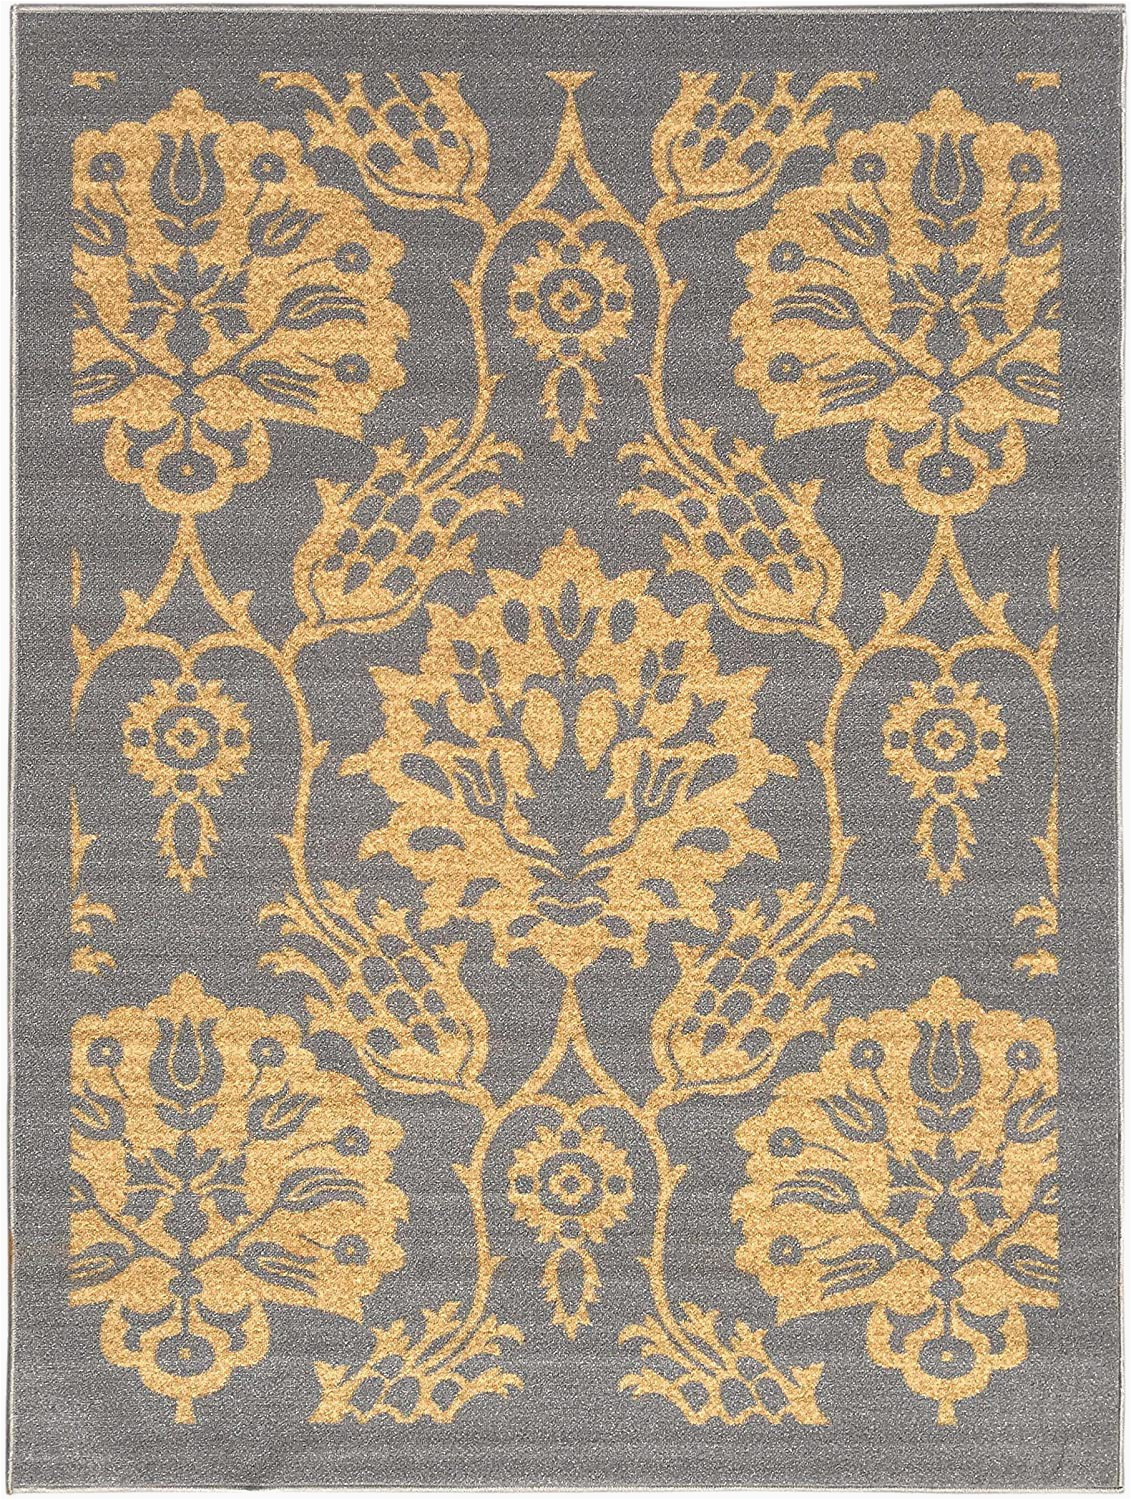 5×7 Rubber Backed area Rug 5 Feet X 7 Feet Non Skid Rubber Backed area Rug